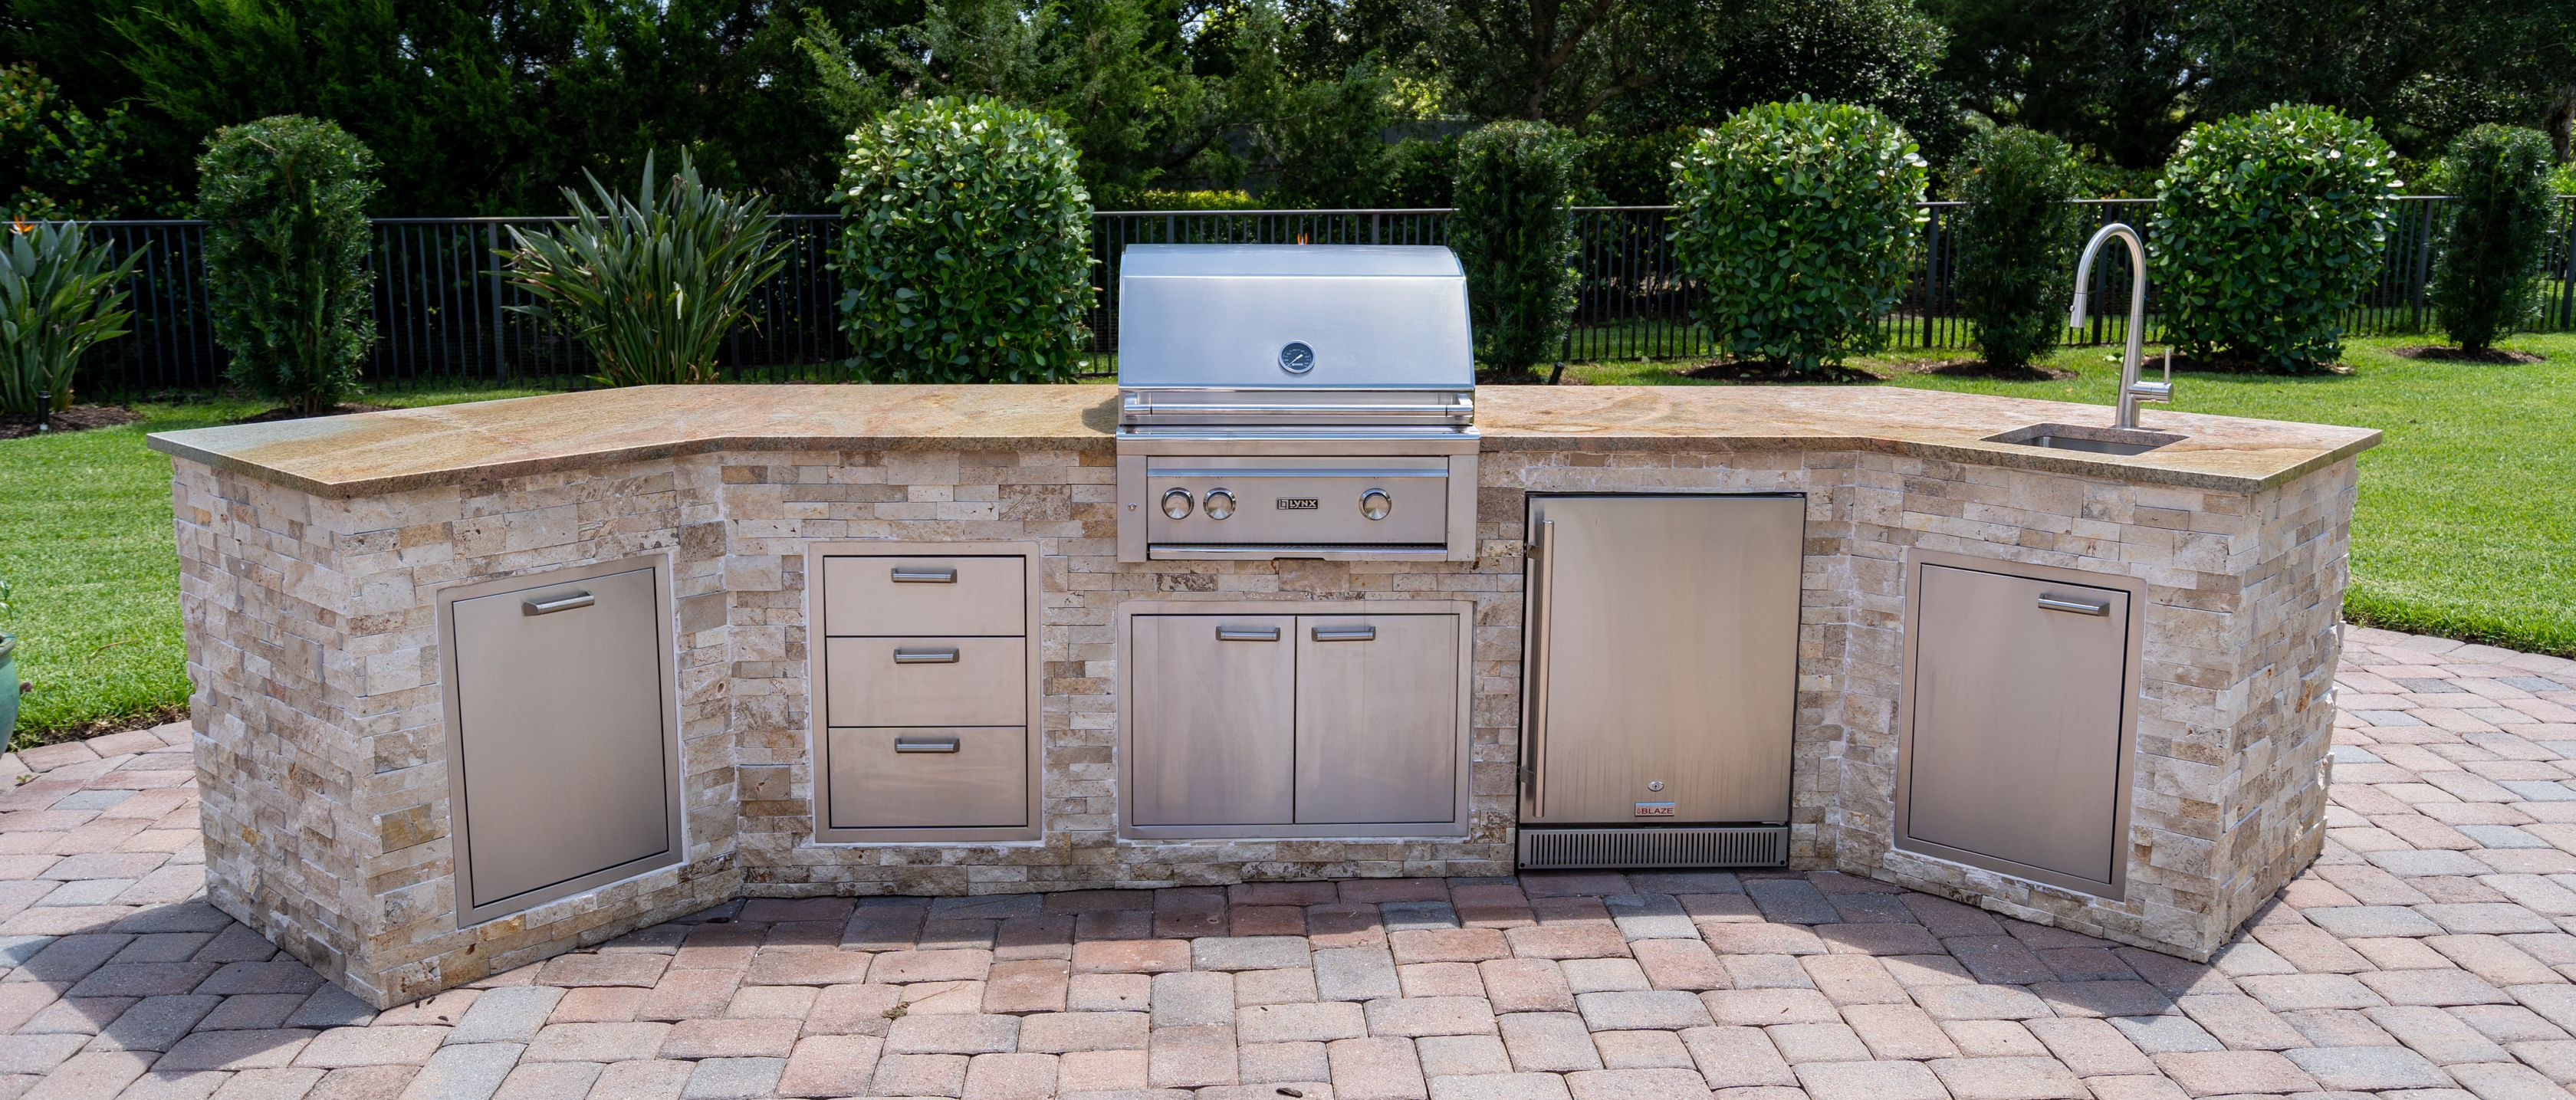 Outdoor Kitchen Jupiter Outdoor Kitchens Don T Need To Be Attached To The House Outdoorentertainment Outdoor In 2020 Outdoor Fireplace Outdoor Kitchen Patio Style